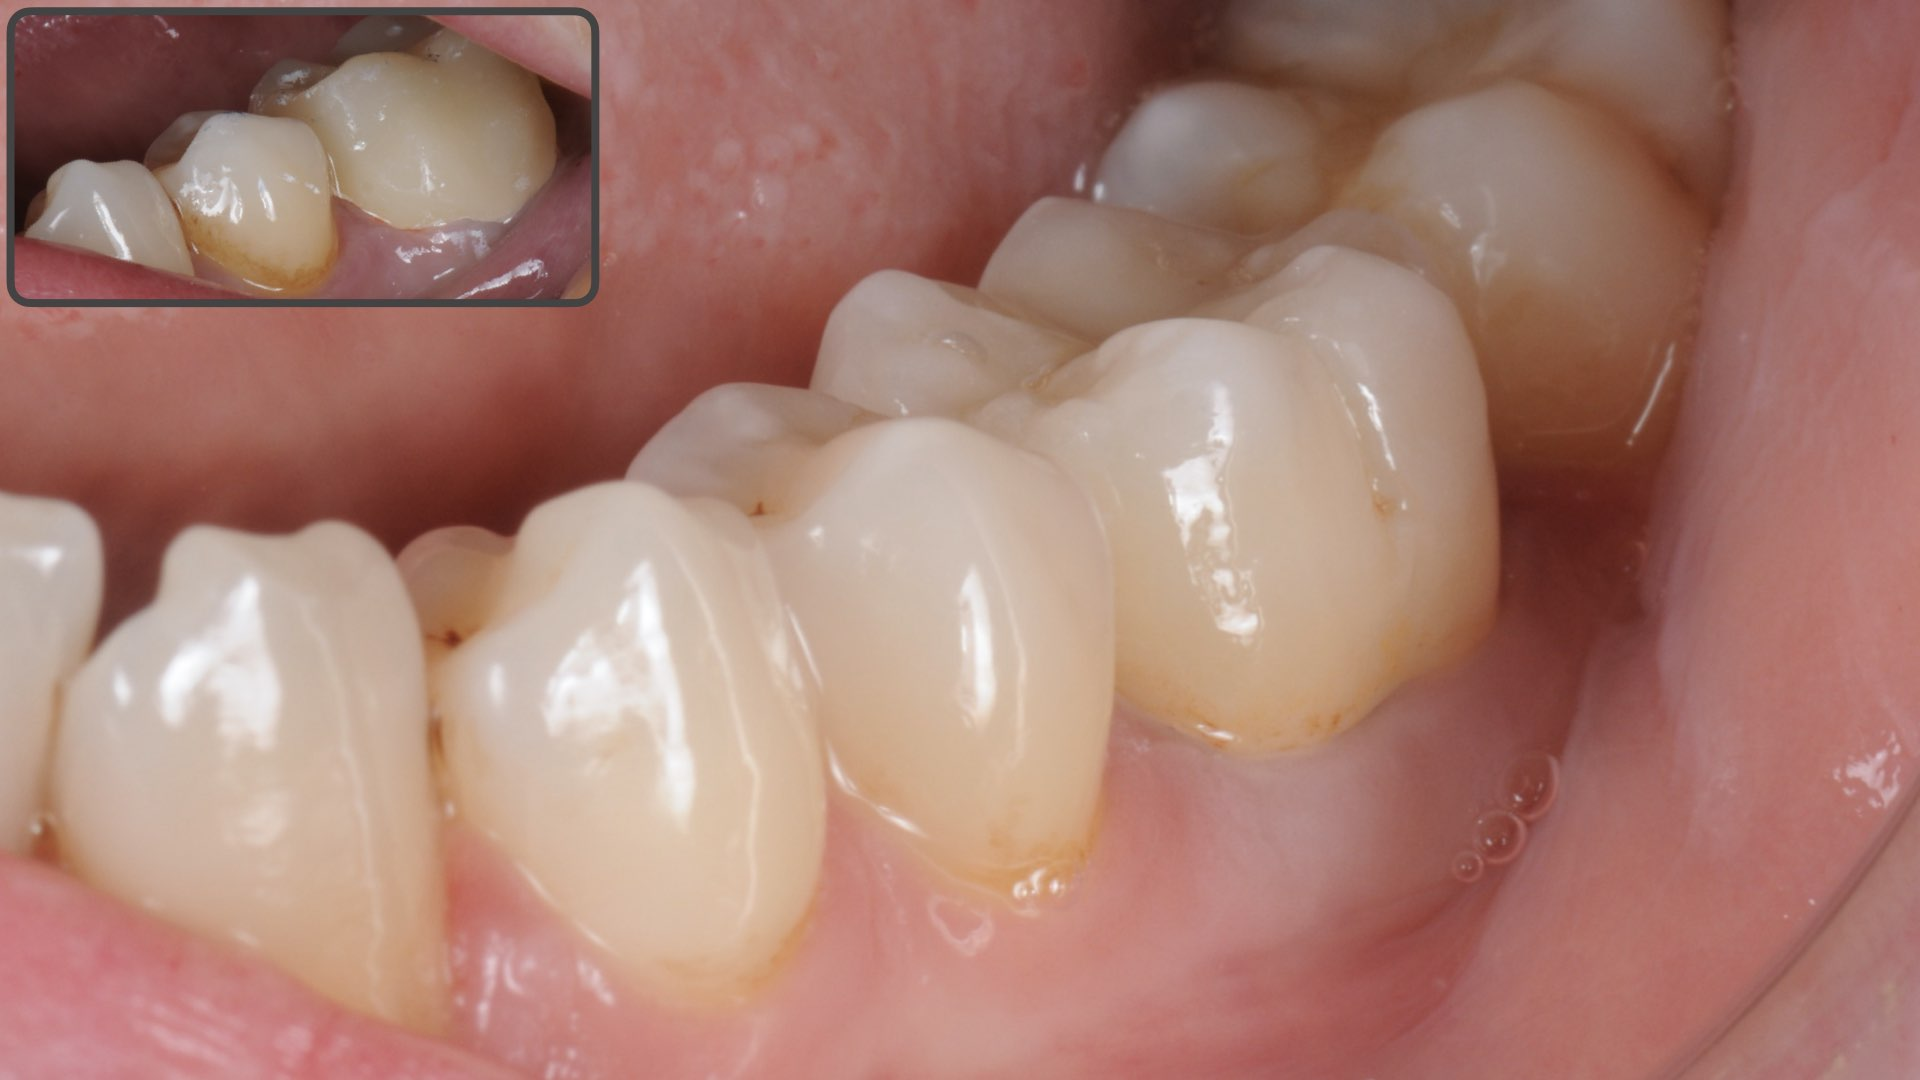 Clinical Case 4, picture 1 :  Improved aesthetics with a zirconia layered restoration on first molar